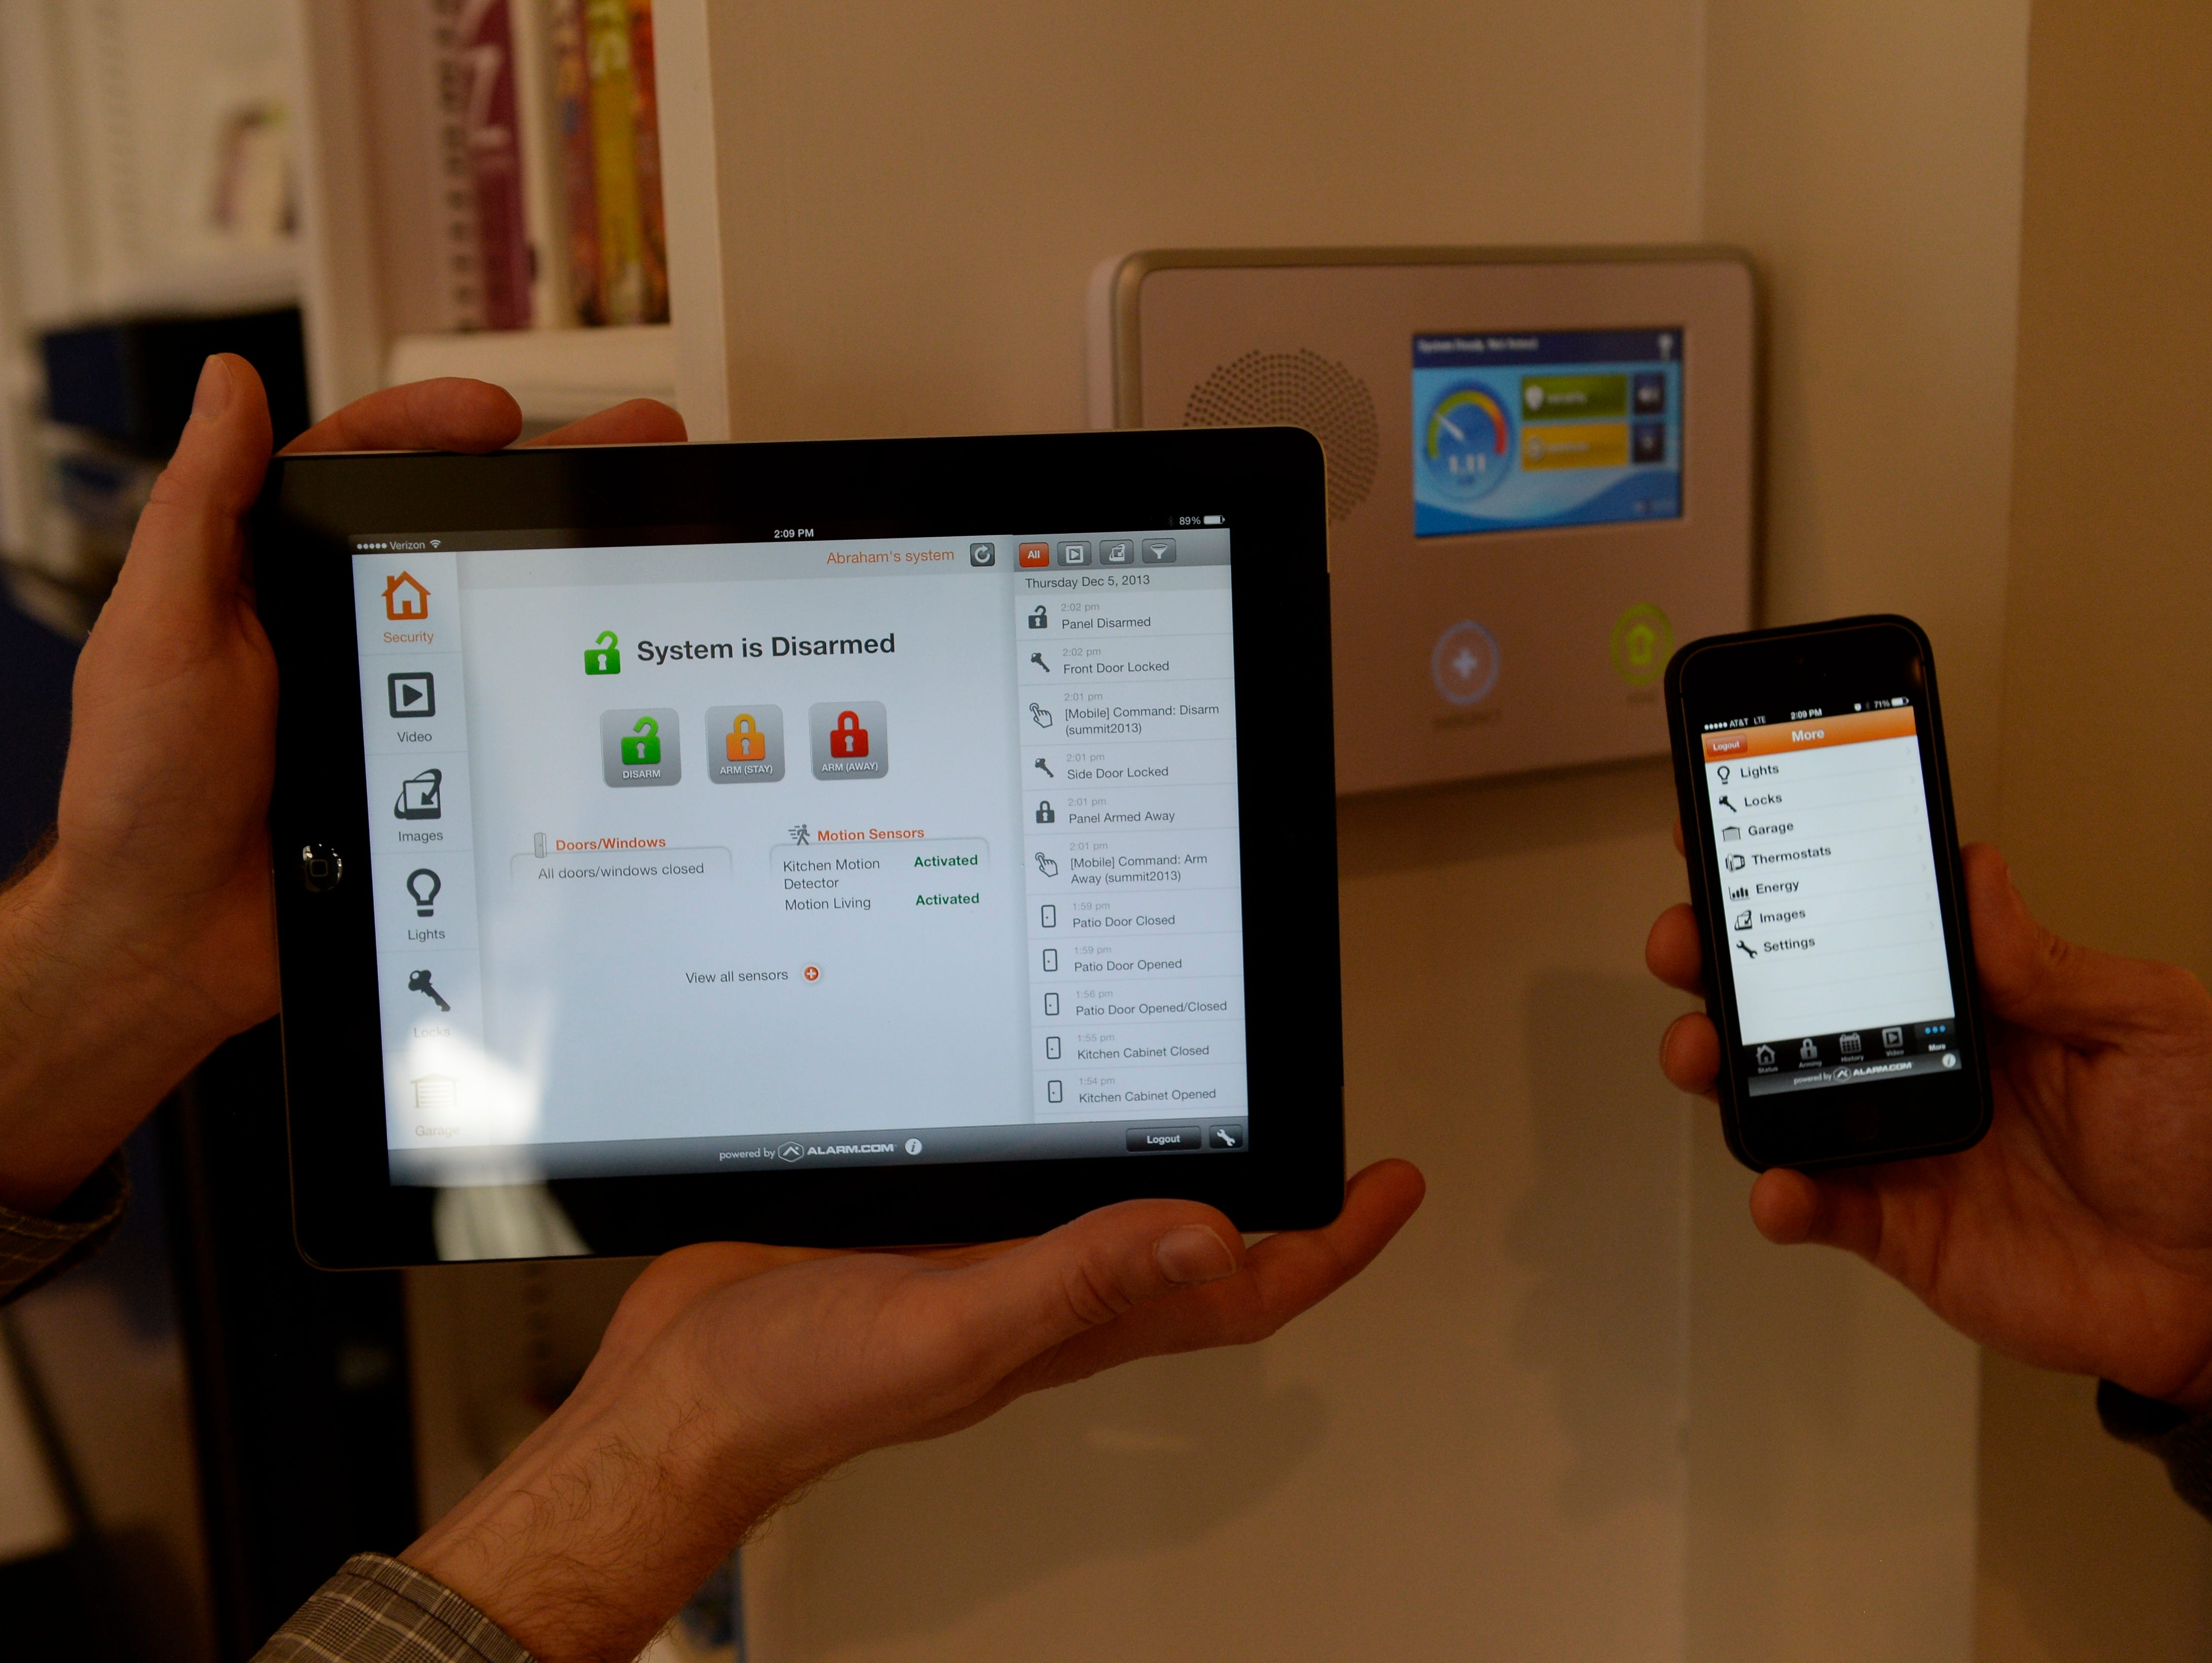 A security system from Alarm.com uses mobile apps to control alarms, lights, thermostats and more.